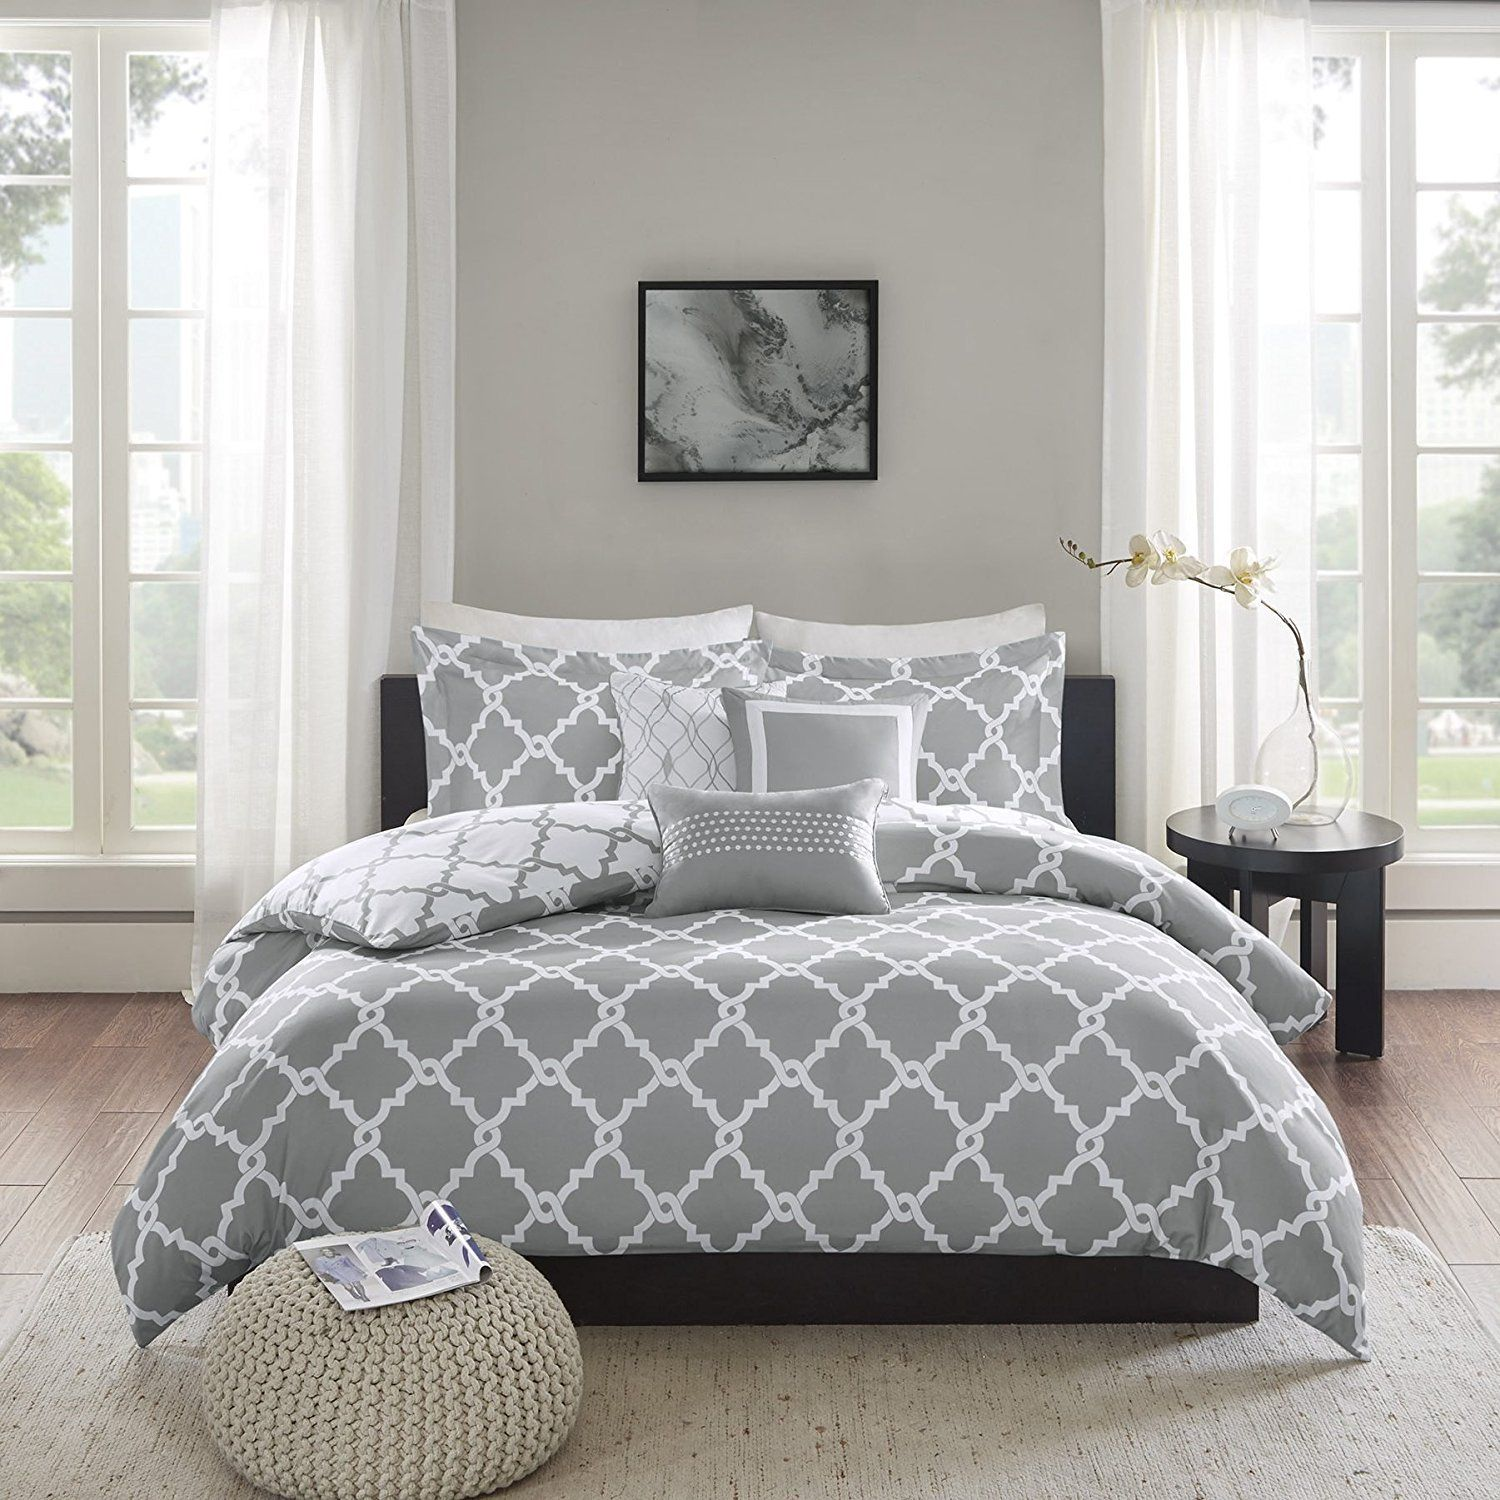 gray grey white covers cotton duvet cover and queen